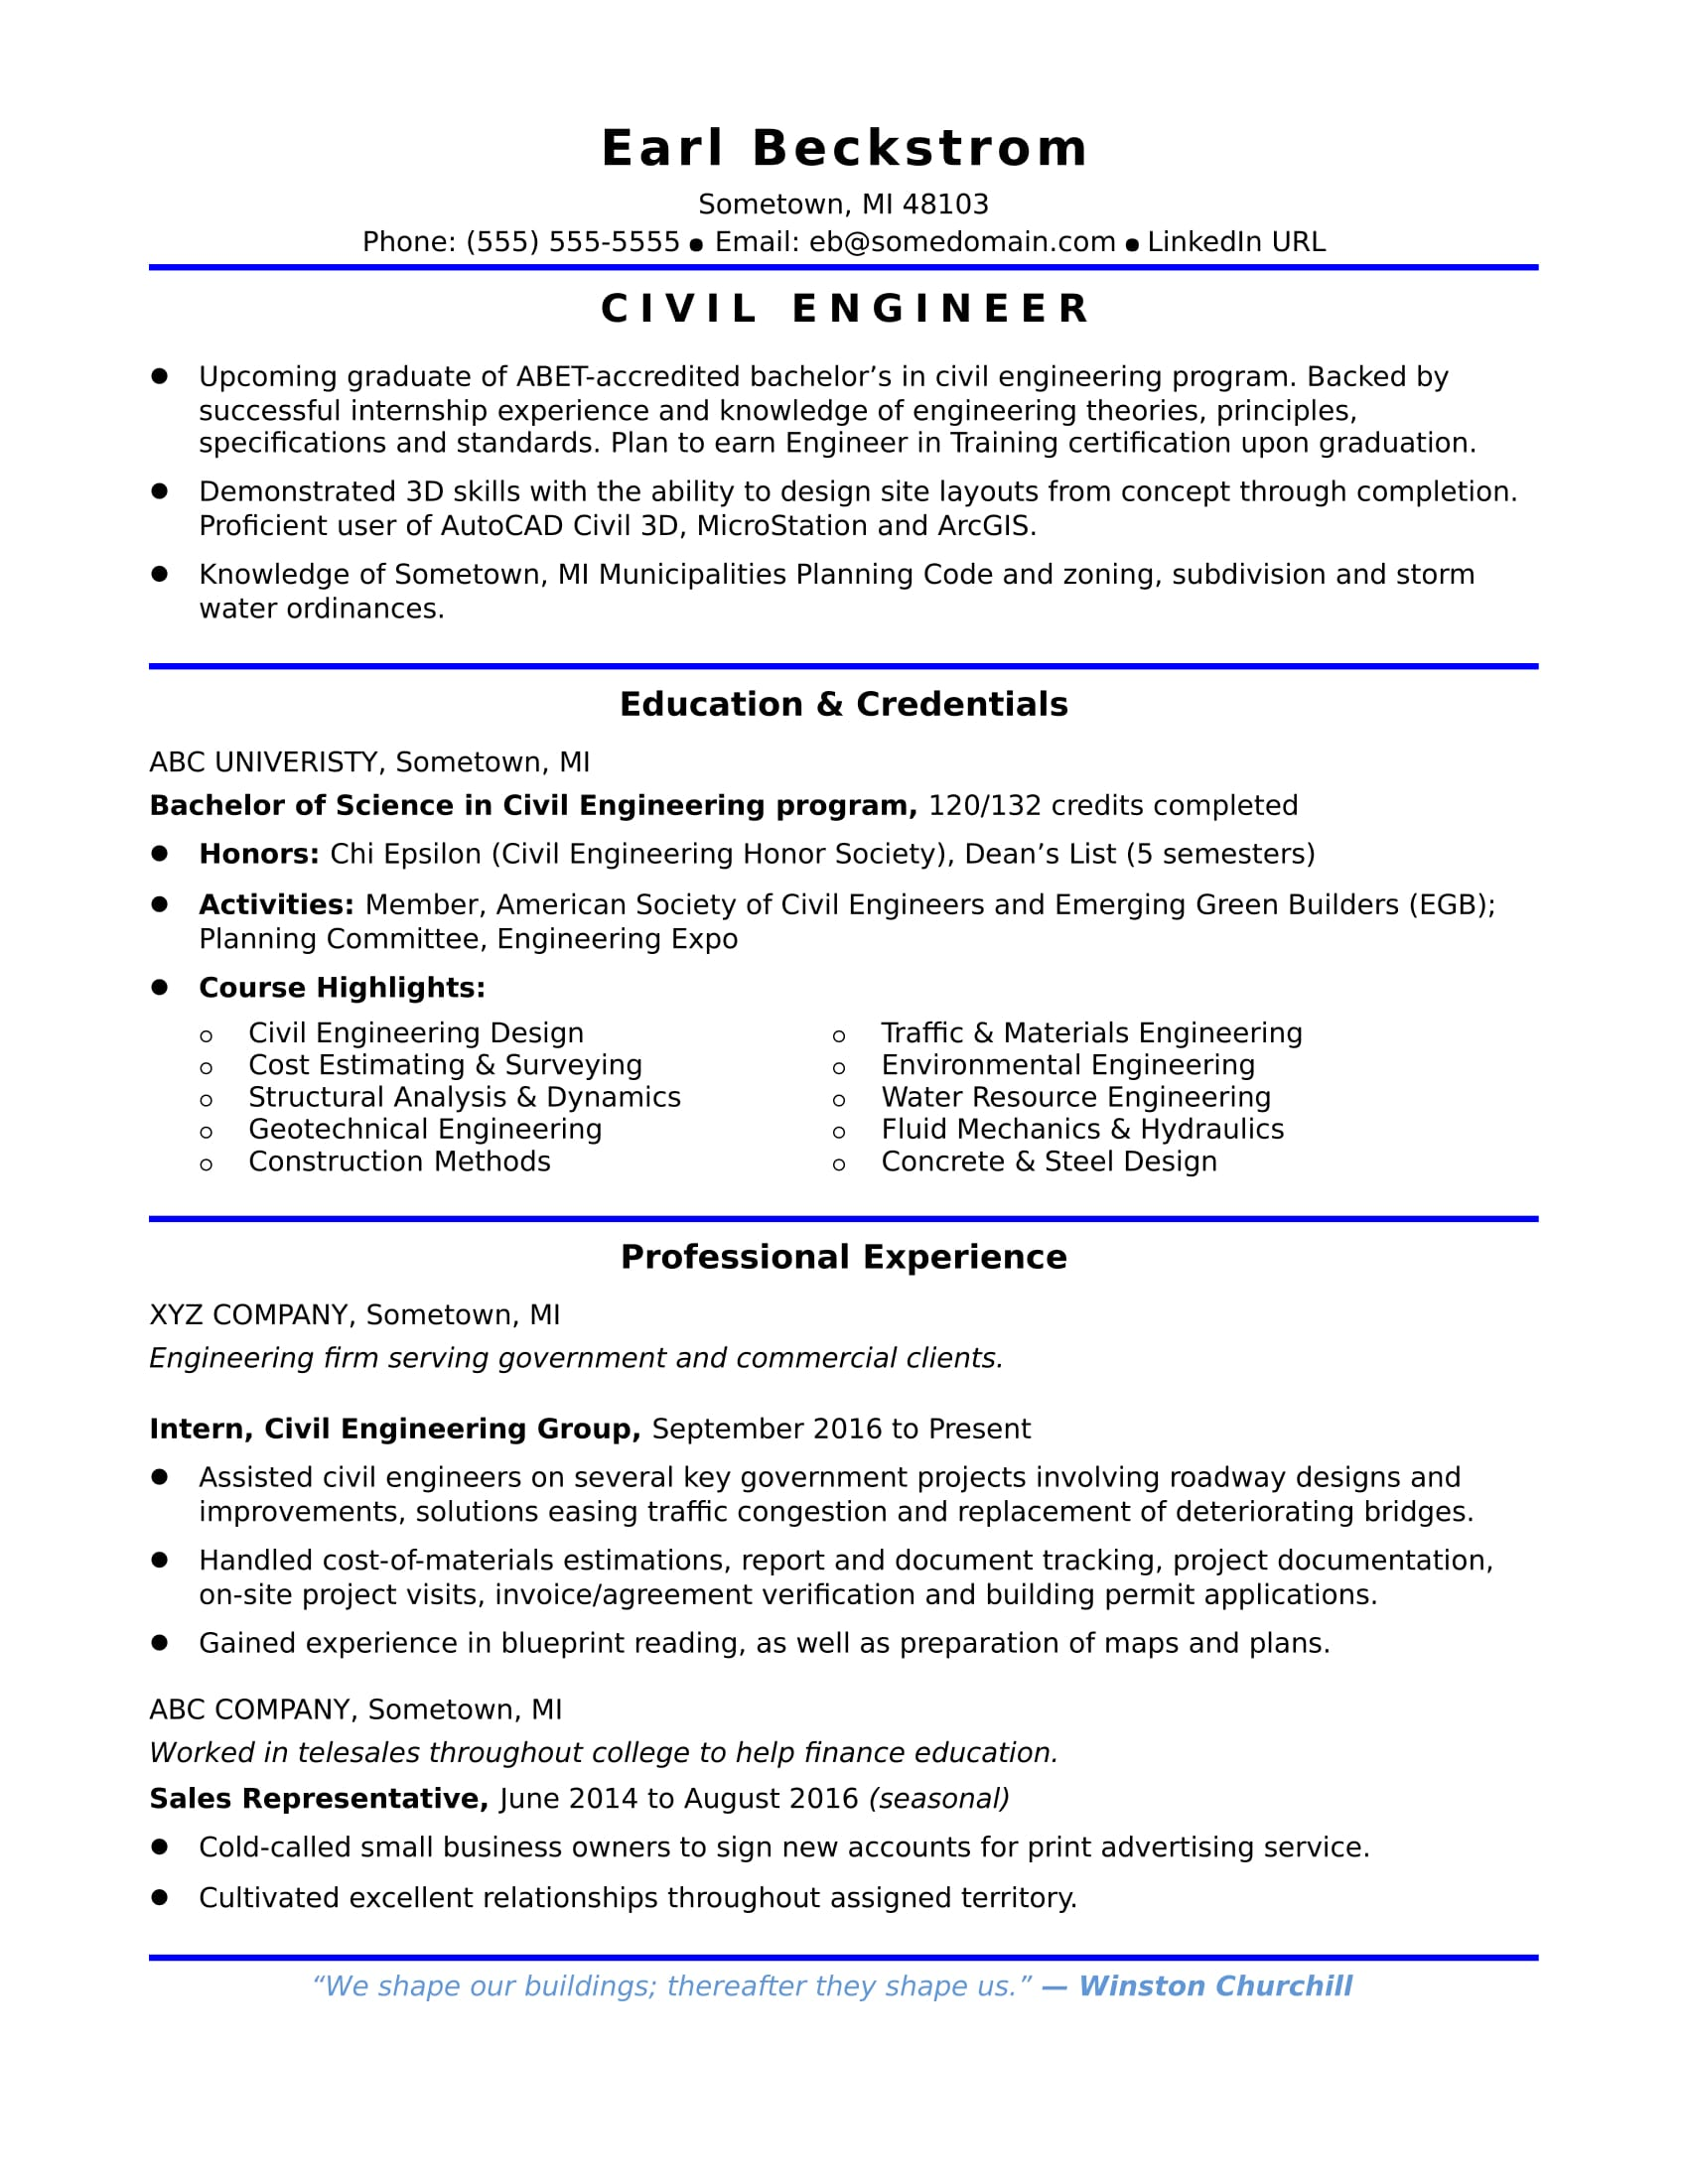 resume Civil Engineering Entry Level Resume sample resume for an entry level civil engineer monster com engineer